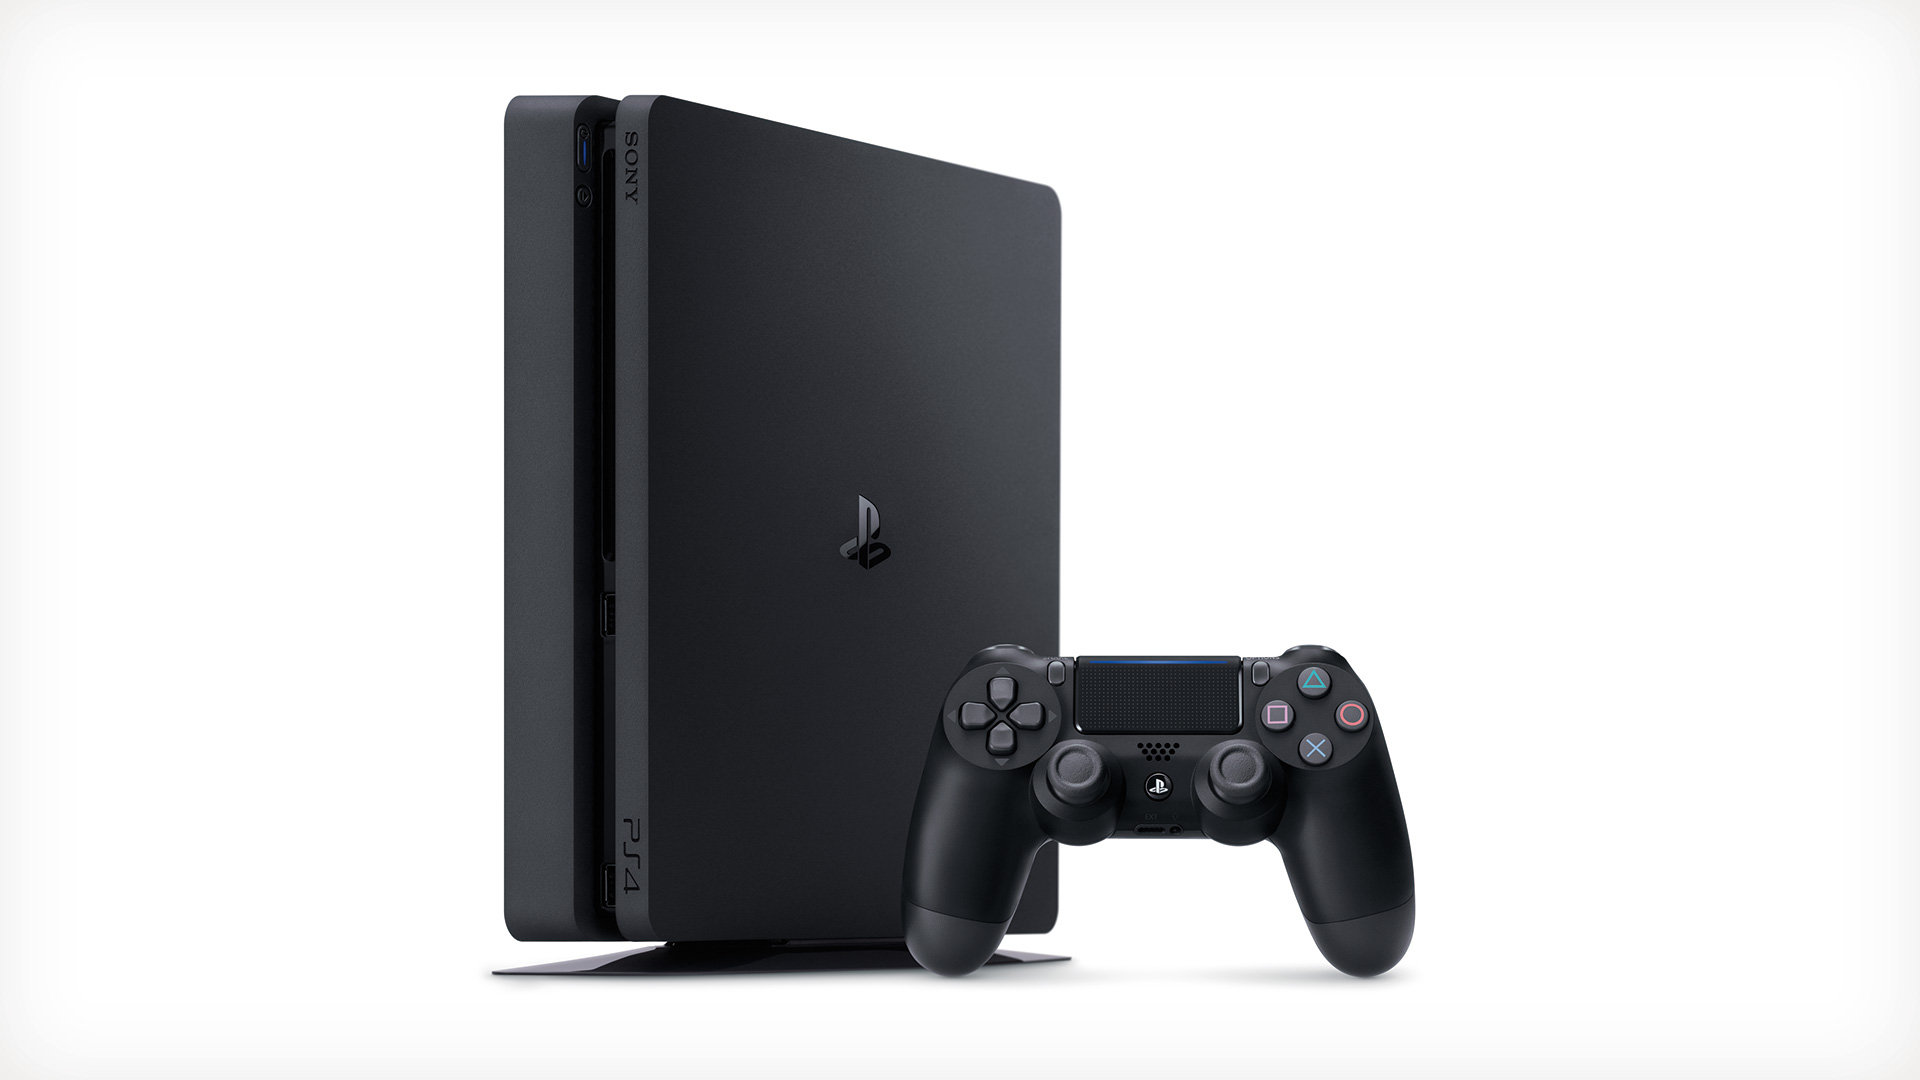 sony annonce la nouvelle ps4 slim et la prochaine ps4 pro news jeux vid o back to the geek. Black Bedroom Furniture Sets. Home Design Ideas